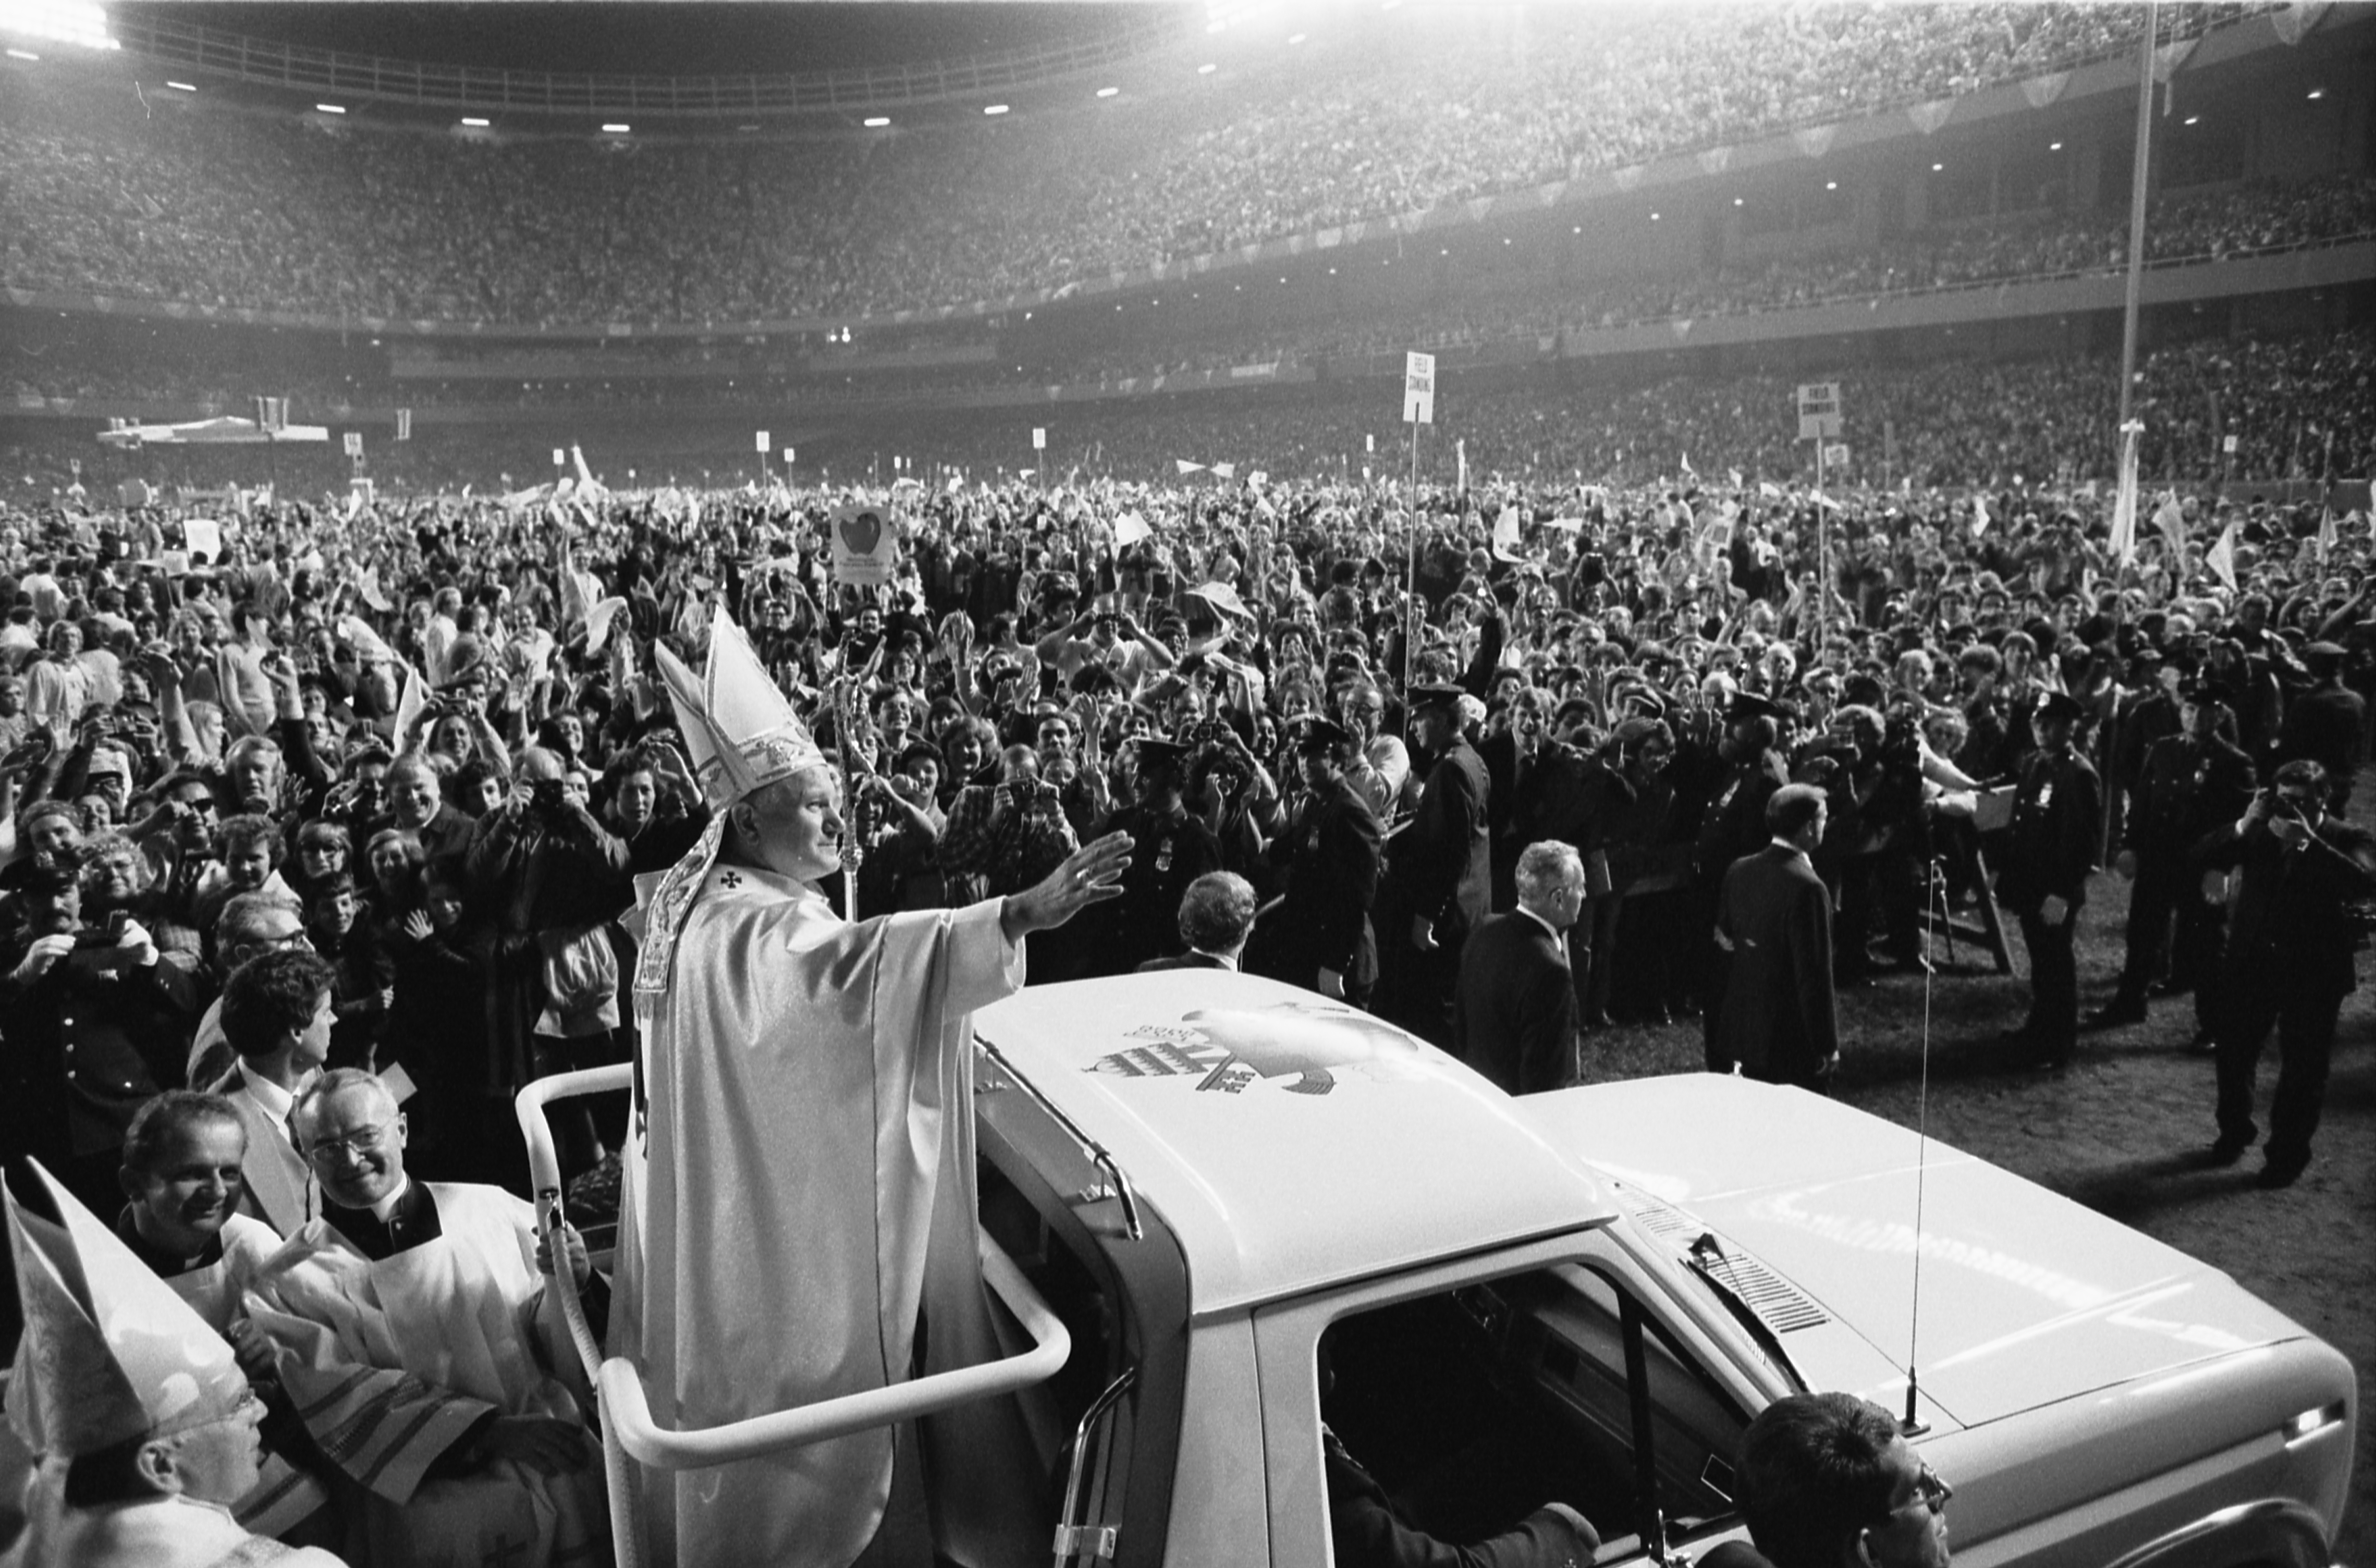 the 1983 visit of pope john Pope john paul ii ad limina visit june 13 in his private library at the vatican 1983) john paul ii genetic manipulation medical physicians.